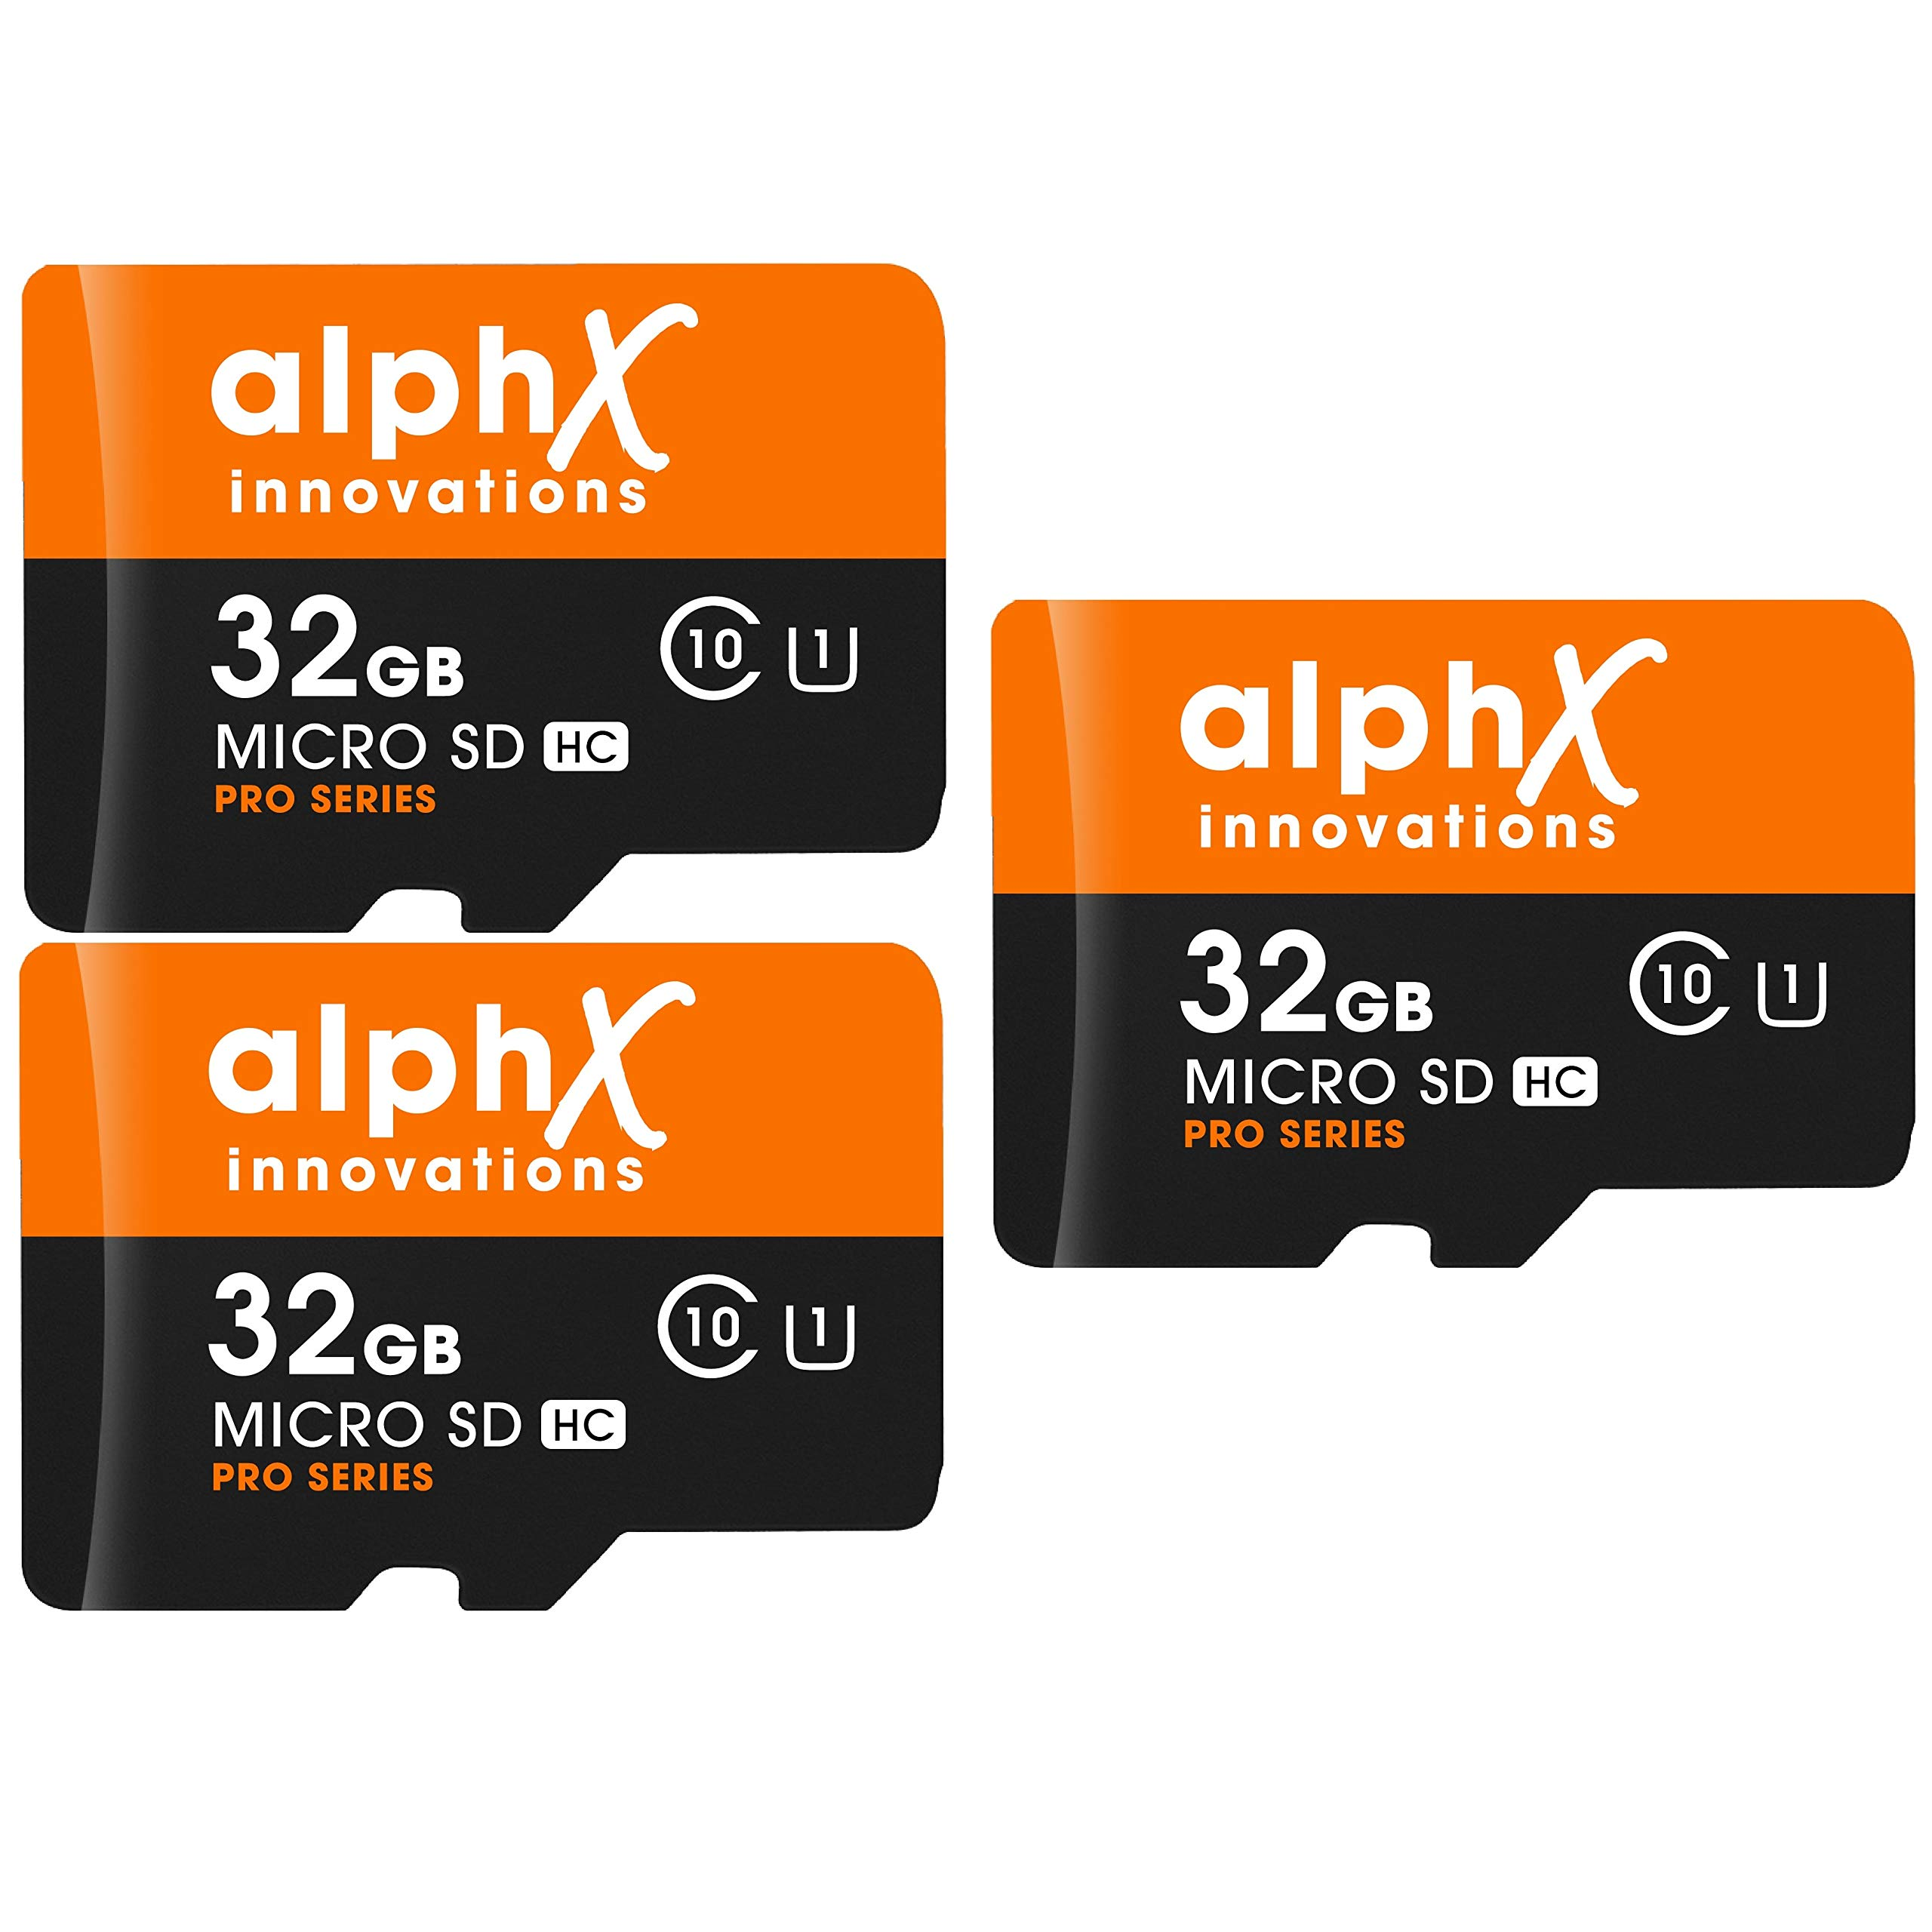 5 Piece Bundle - AlphX 32gb [3 pack] Micro SD High Speed Class 10 Memory Cards for Samsung Galaxy S9, S9+, S8, Note 8, S7, S5, S4 with Bonus Adapter and Sandisk Micro SD Card Reader